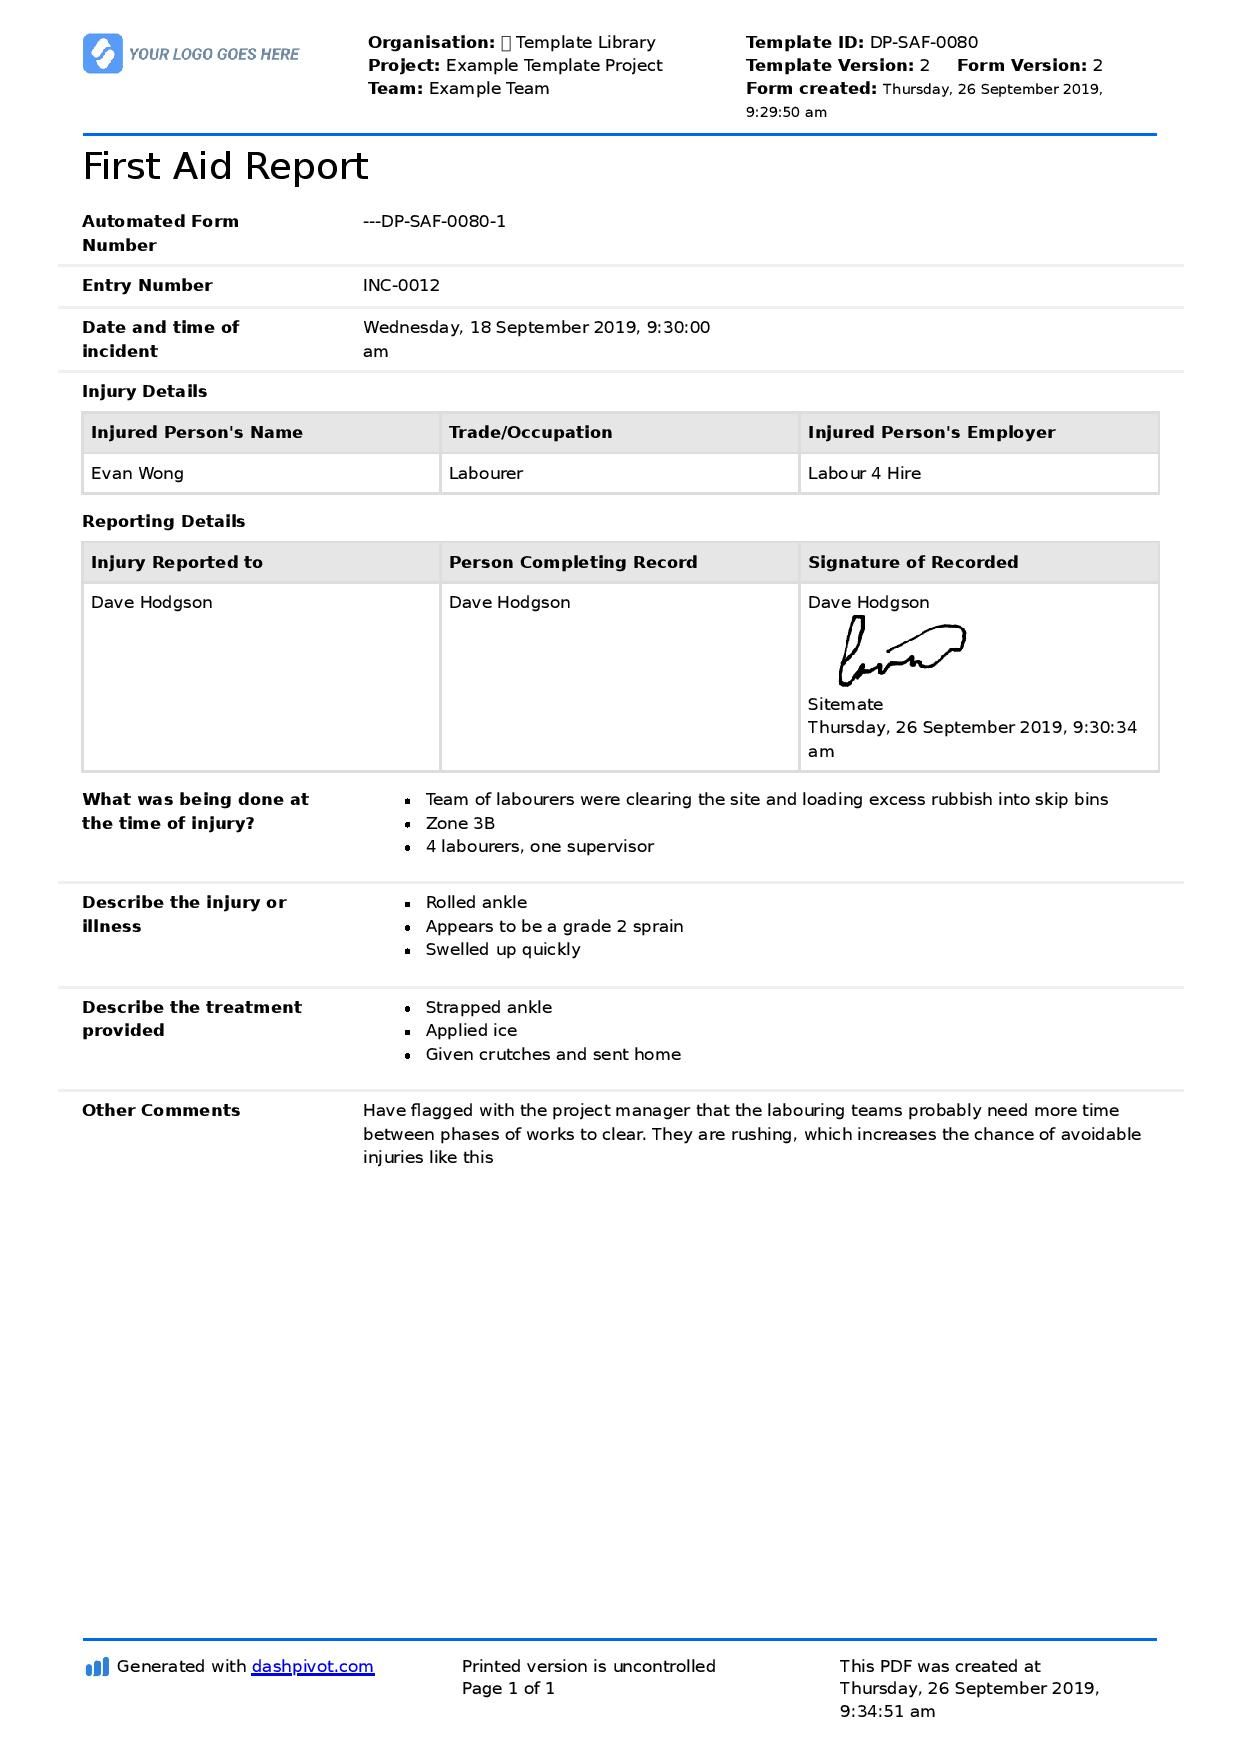 First Aid Report Form Template (Free To Use, Better Than